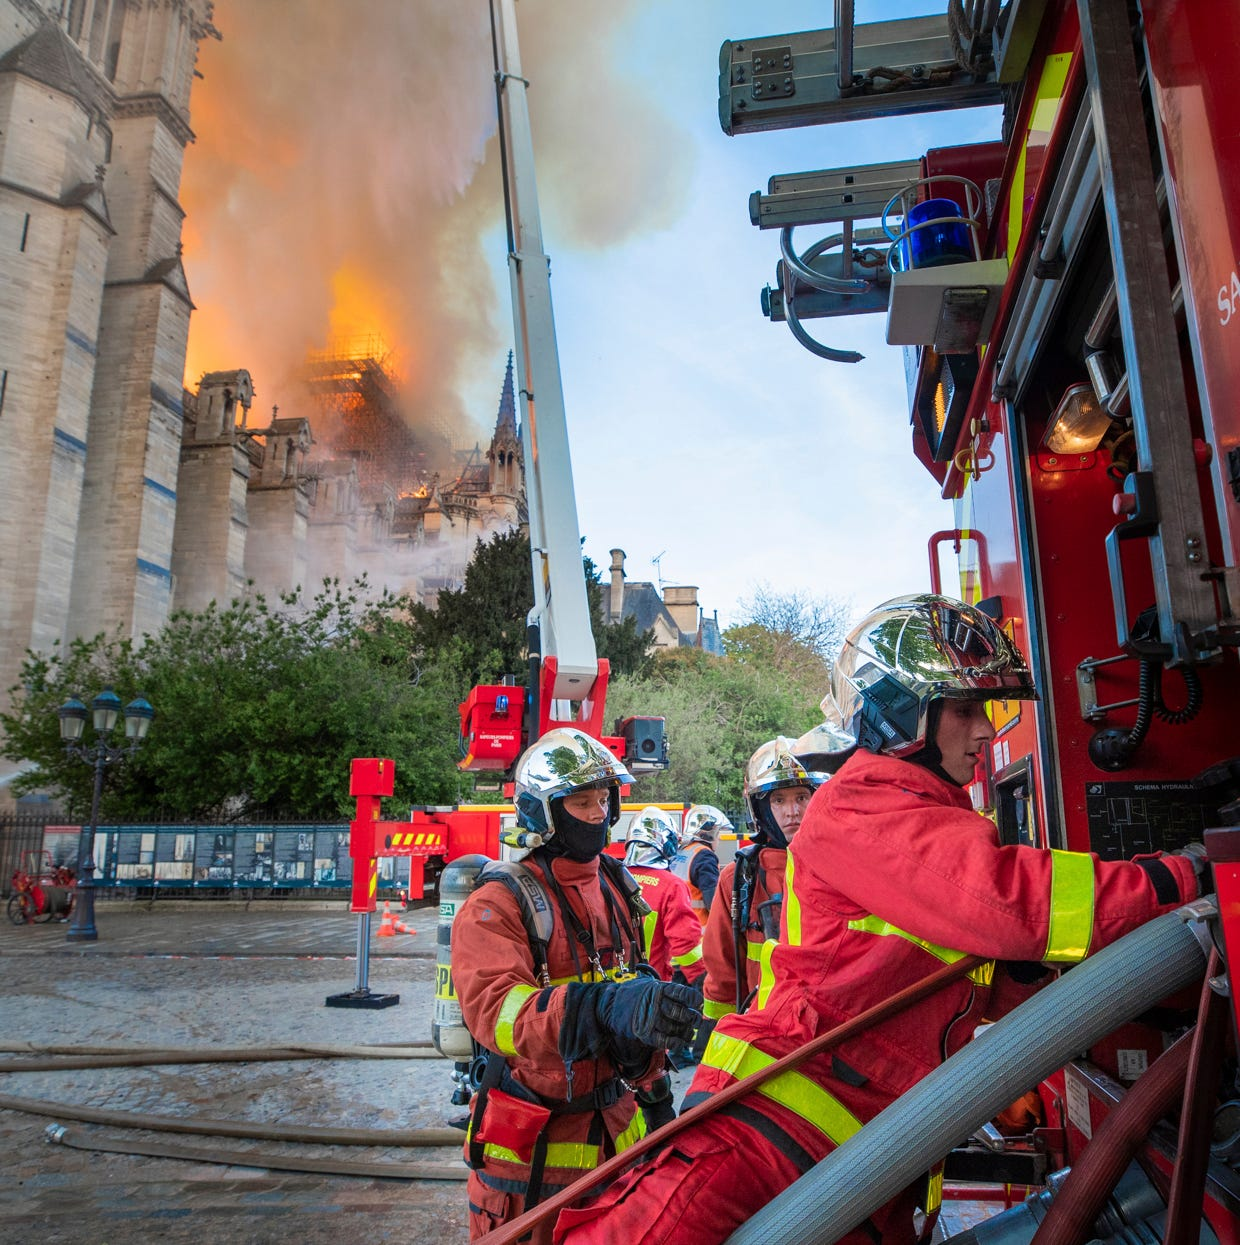 This photo provided by the Paris Fire Brigade, shows fire fighters working at the burning Notre Dame cathedral, on April 15. Experts assessed the blackened shell of Paris' iconic Notre Dame Tuesday morning to establish next steps to save what remains after a devastating fire destroyed much of the cathedral that had survived almost 900 years of history.